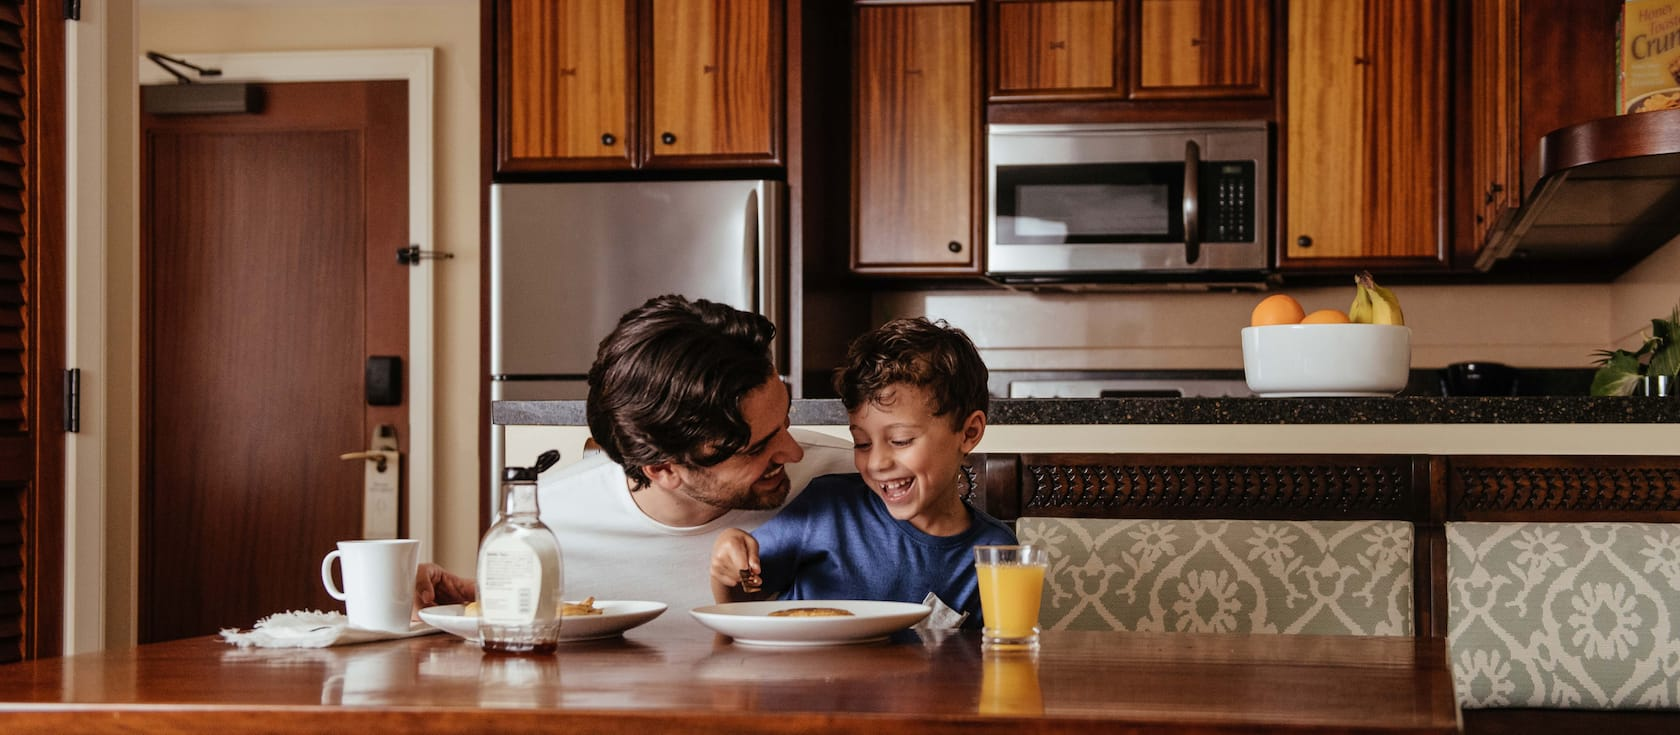 A father and son laugh as they eat pancakes at a kitchen table